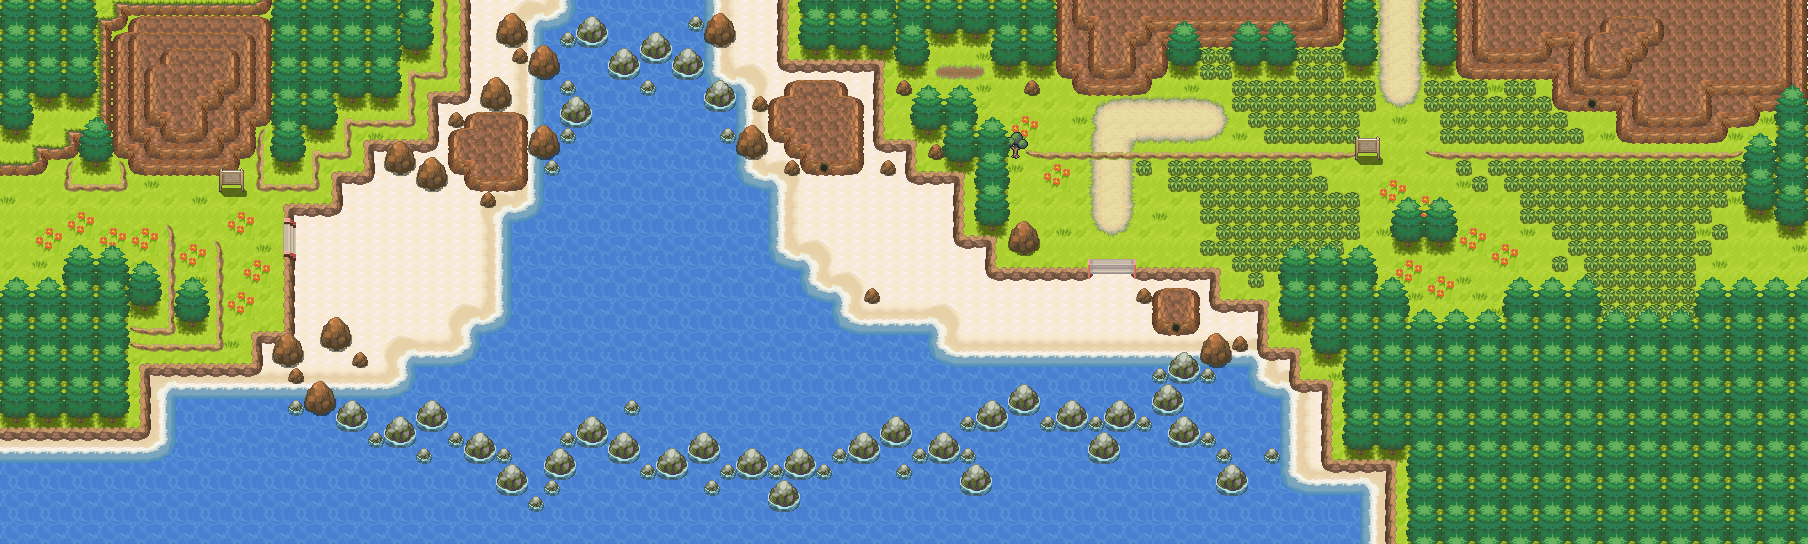 Route 118 remake